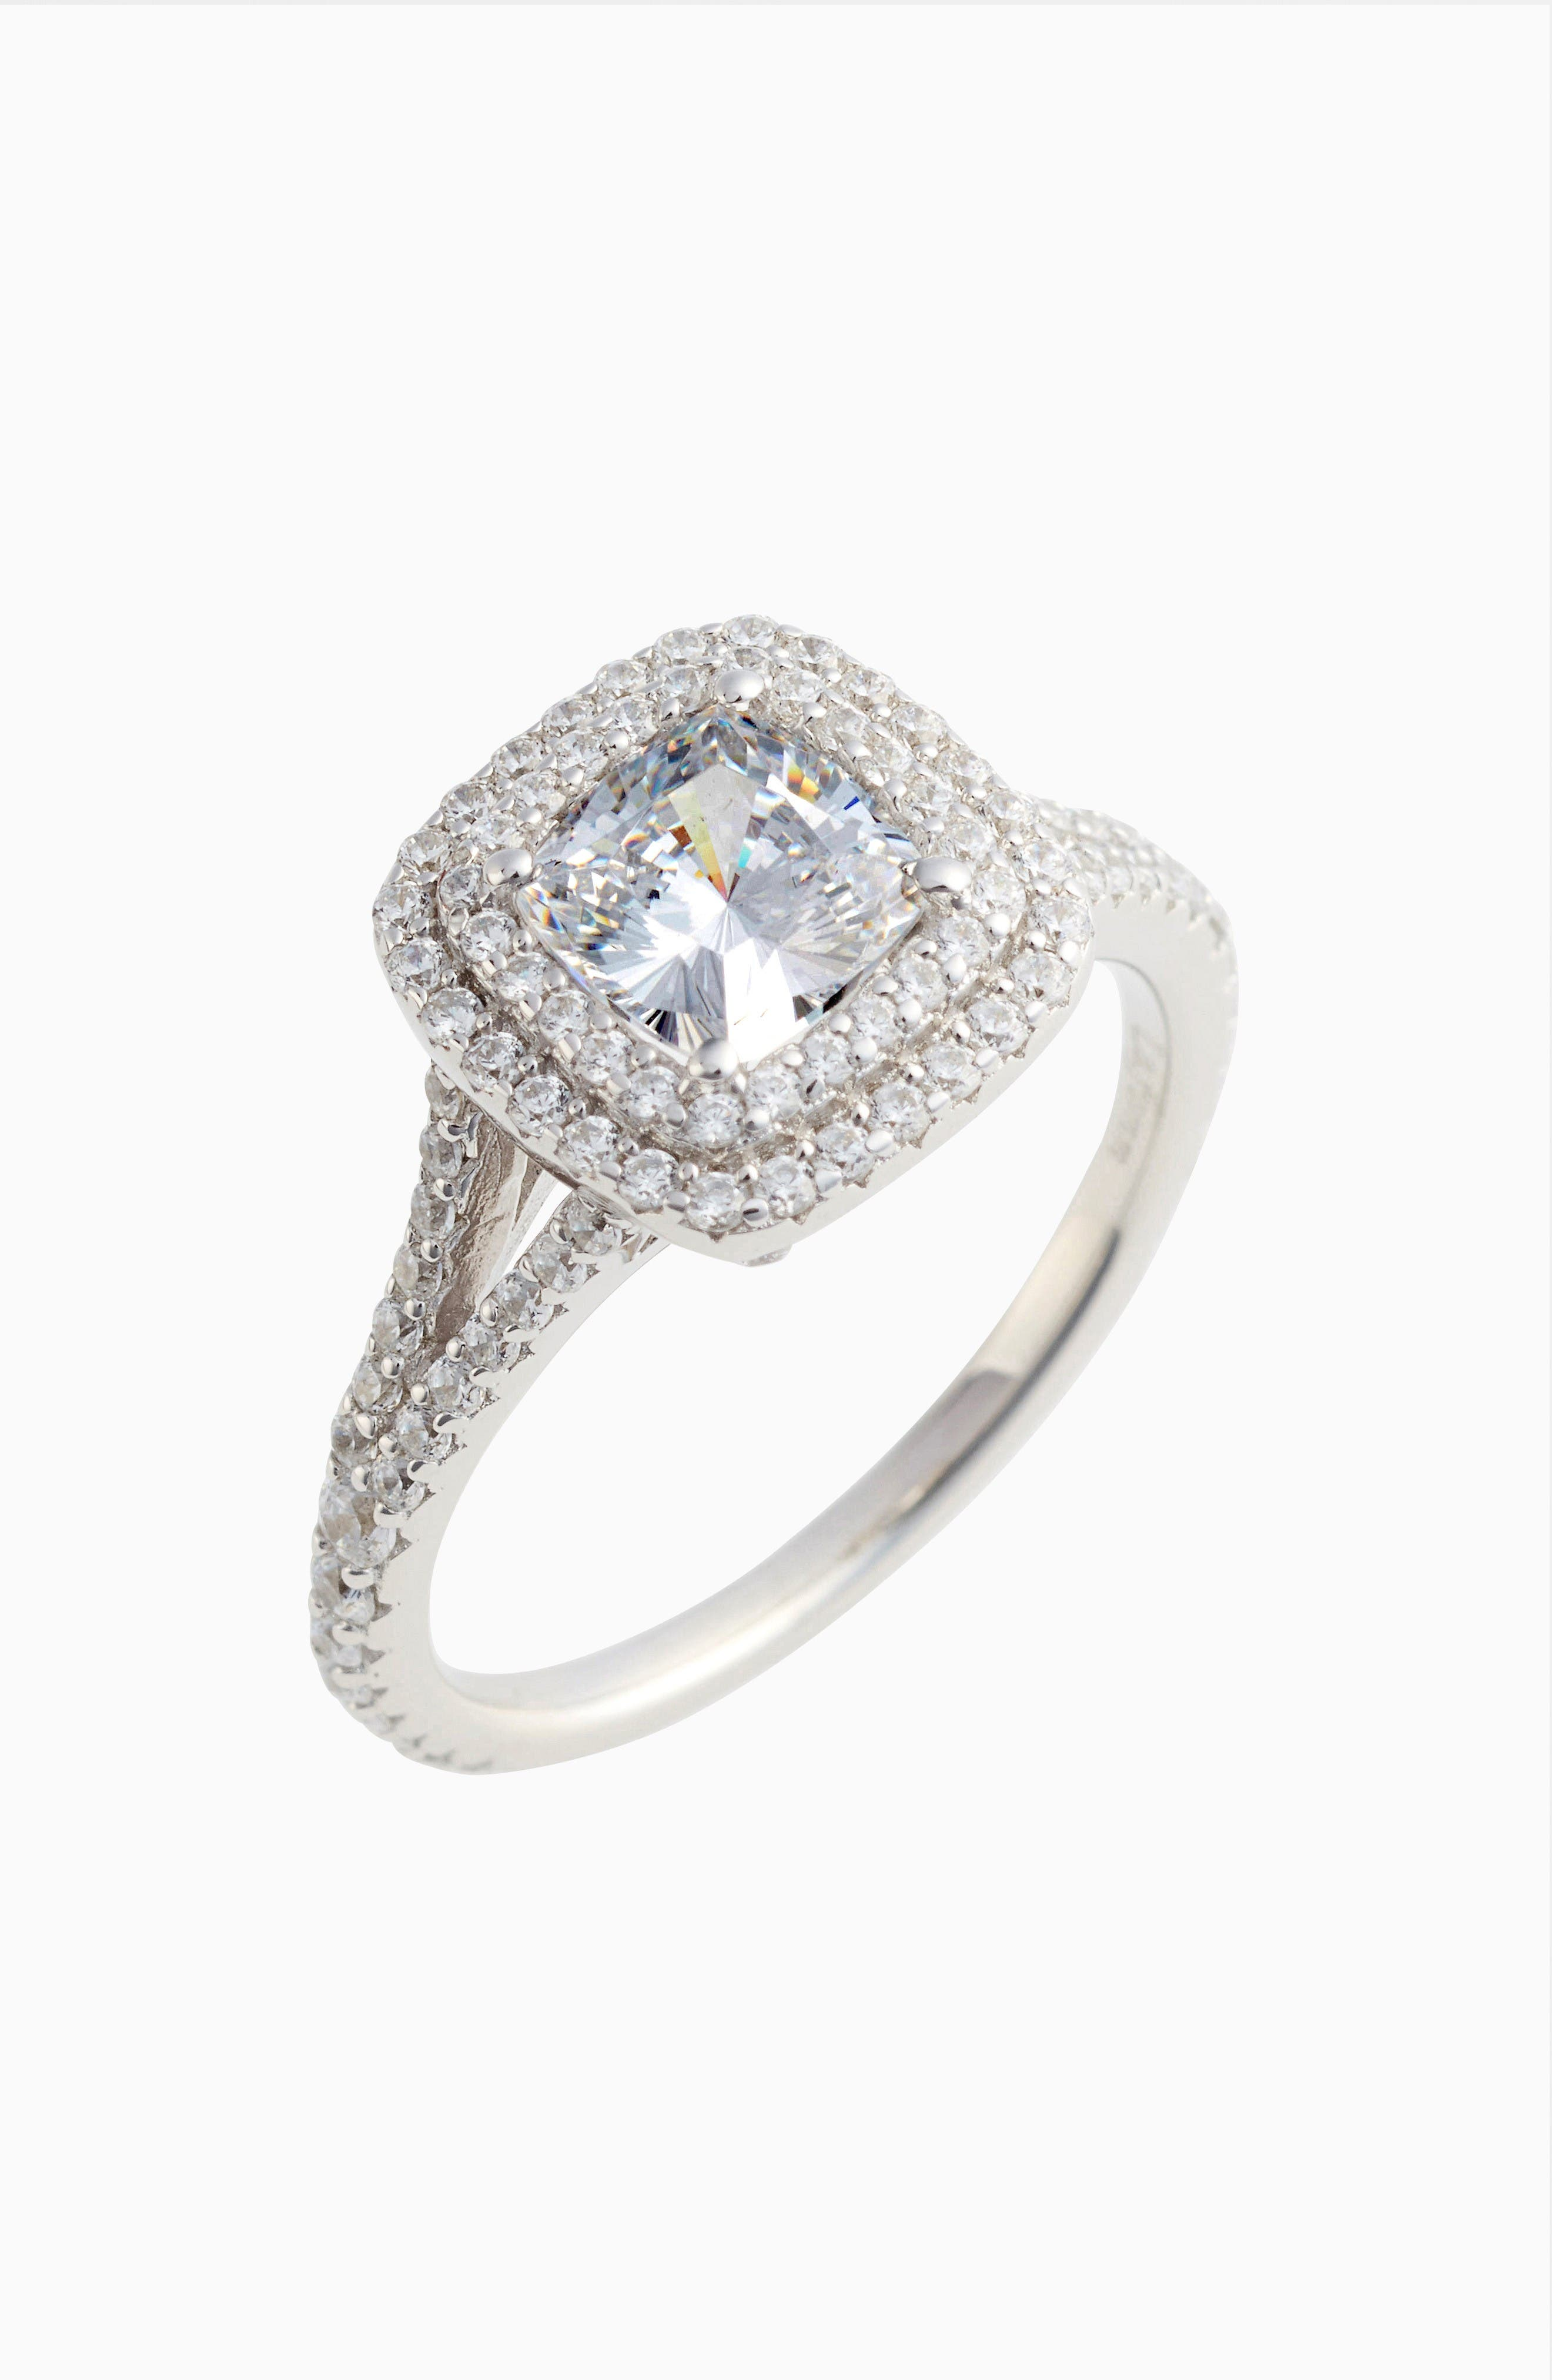 Double Halo Simulated Diamond Ring,                             Main thumbnail 1, color,                             Silver